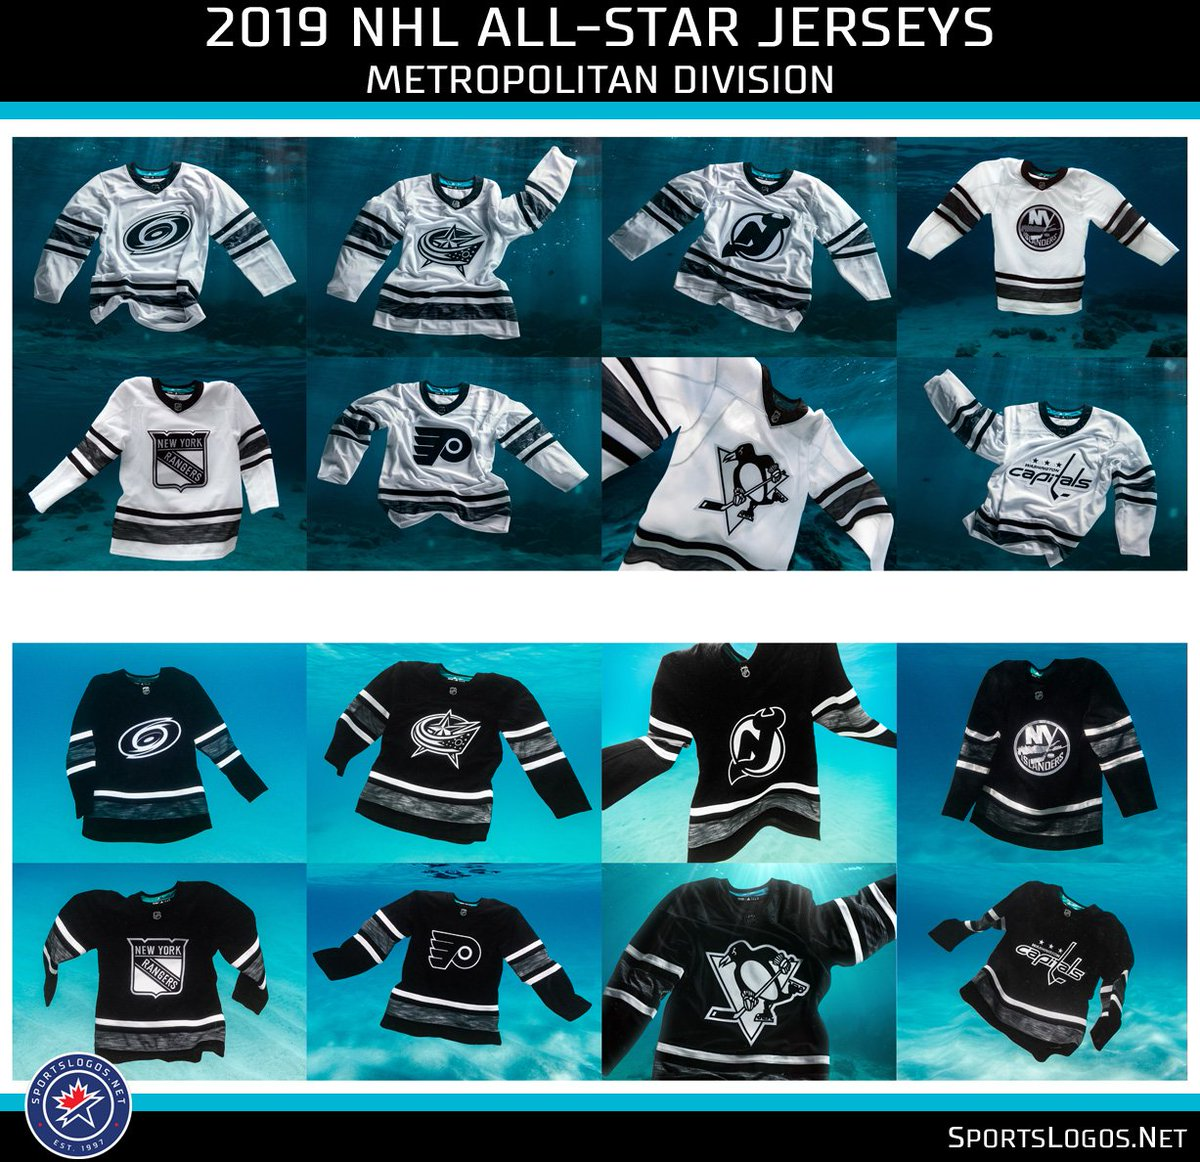 15e61f735 ... in our coverage of the new look here here  http   news.sportslogos.net  2019 01 09 2019-nhl-all-star-game-uniforms-unveiled   …pic.twitter.com 1fY5GoqAcy